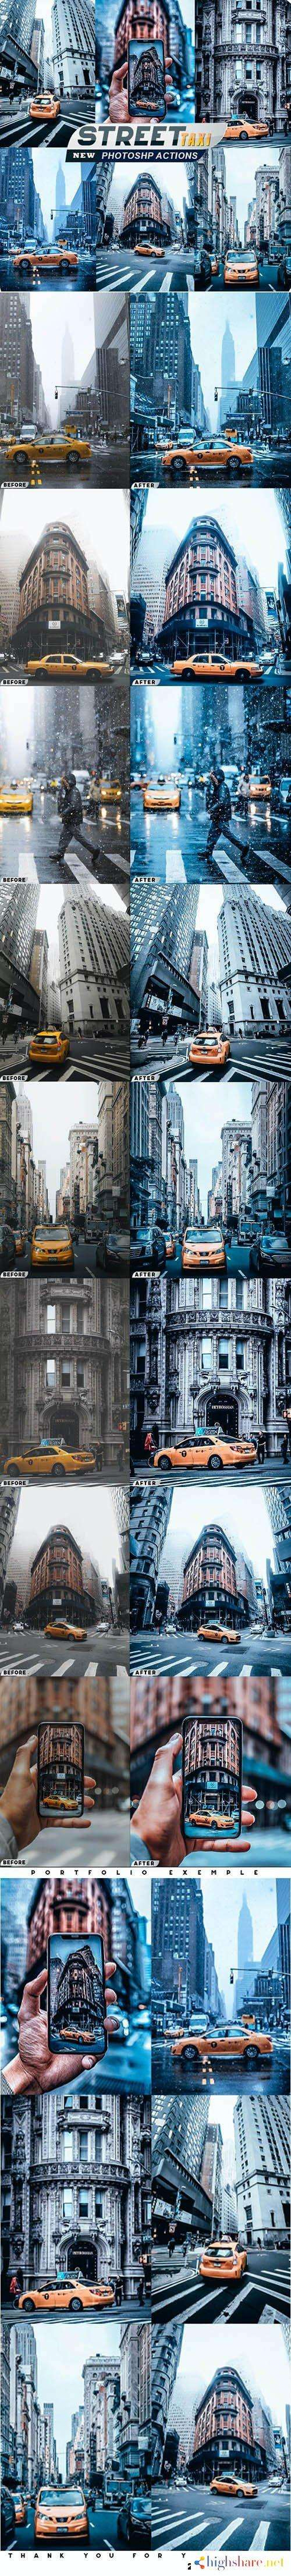 graphicriver street taxi photoshop actions 26717348 5f44eeb838120 - GraphicRiver - Street Taxi Photoshop Actions 26717348